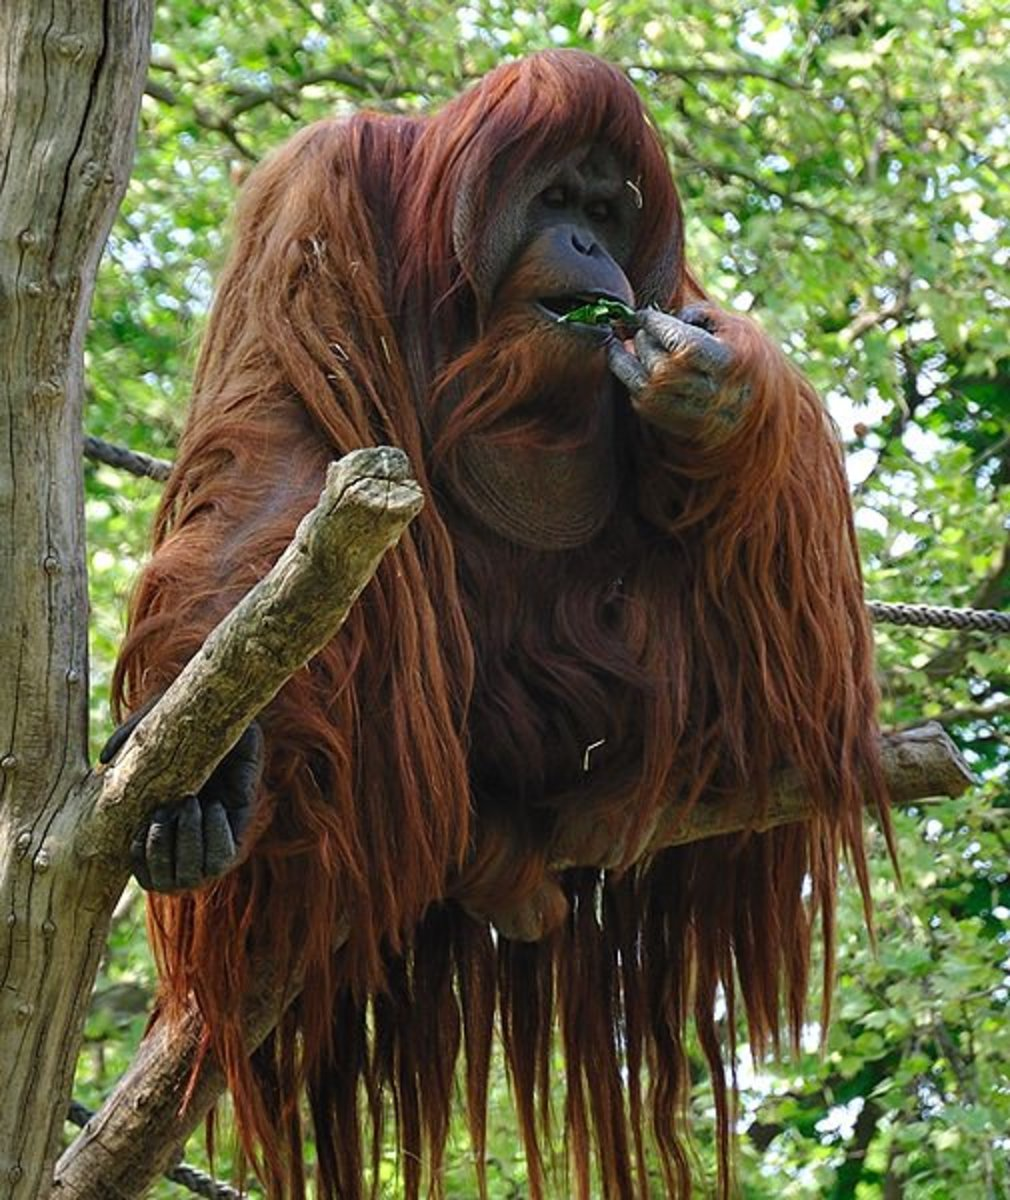 10 Interesting Facts About Orangutans